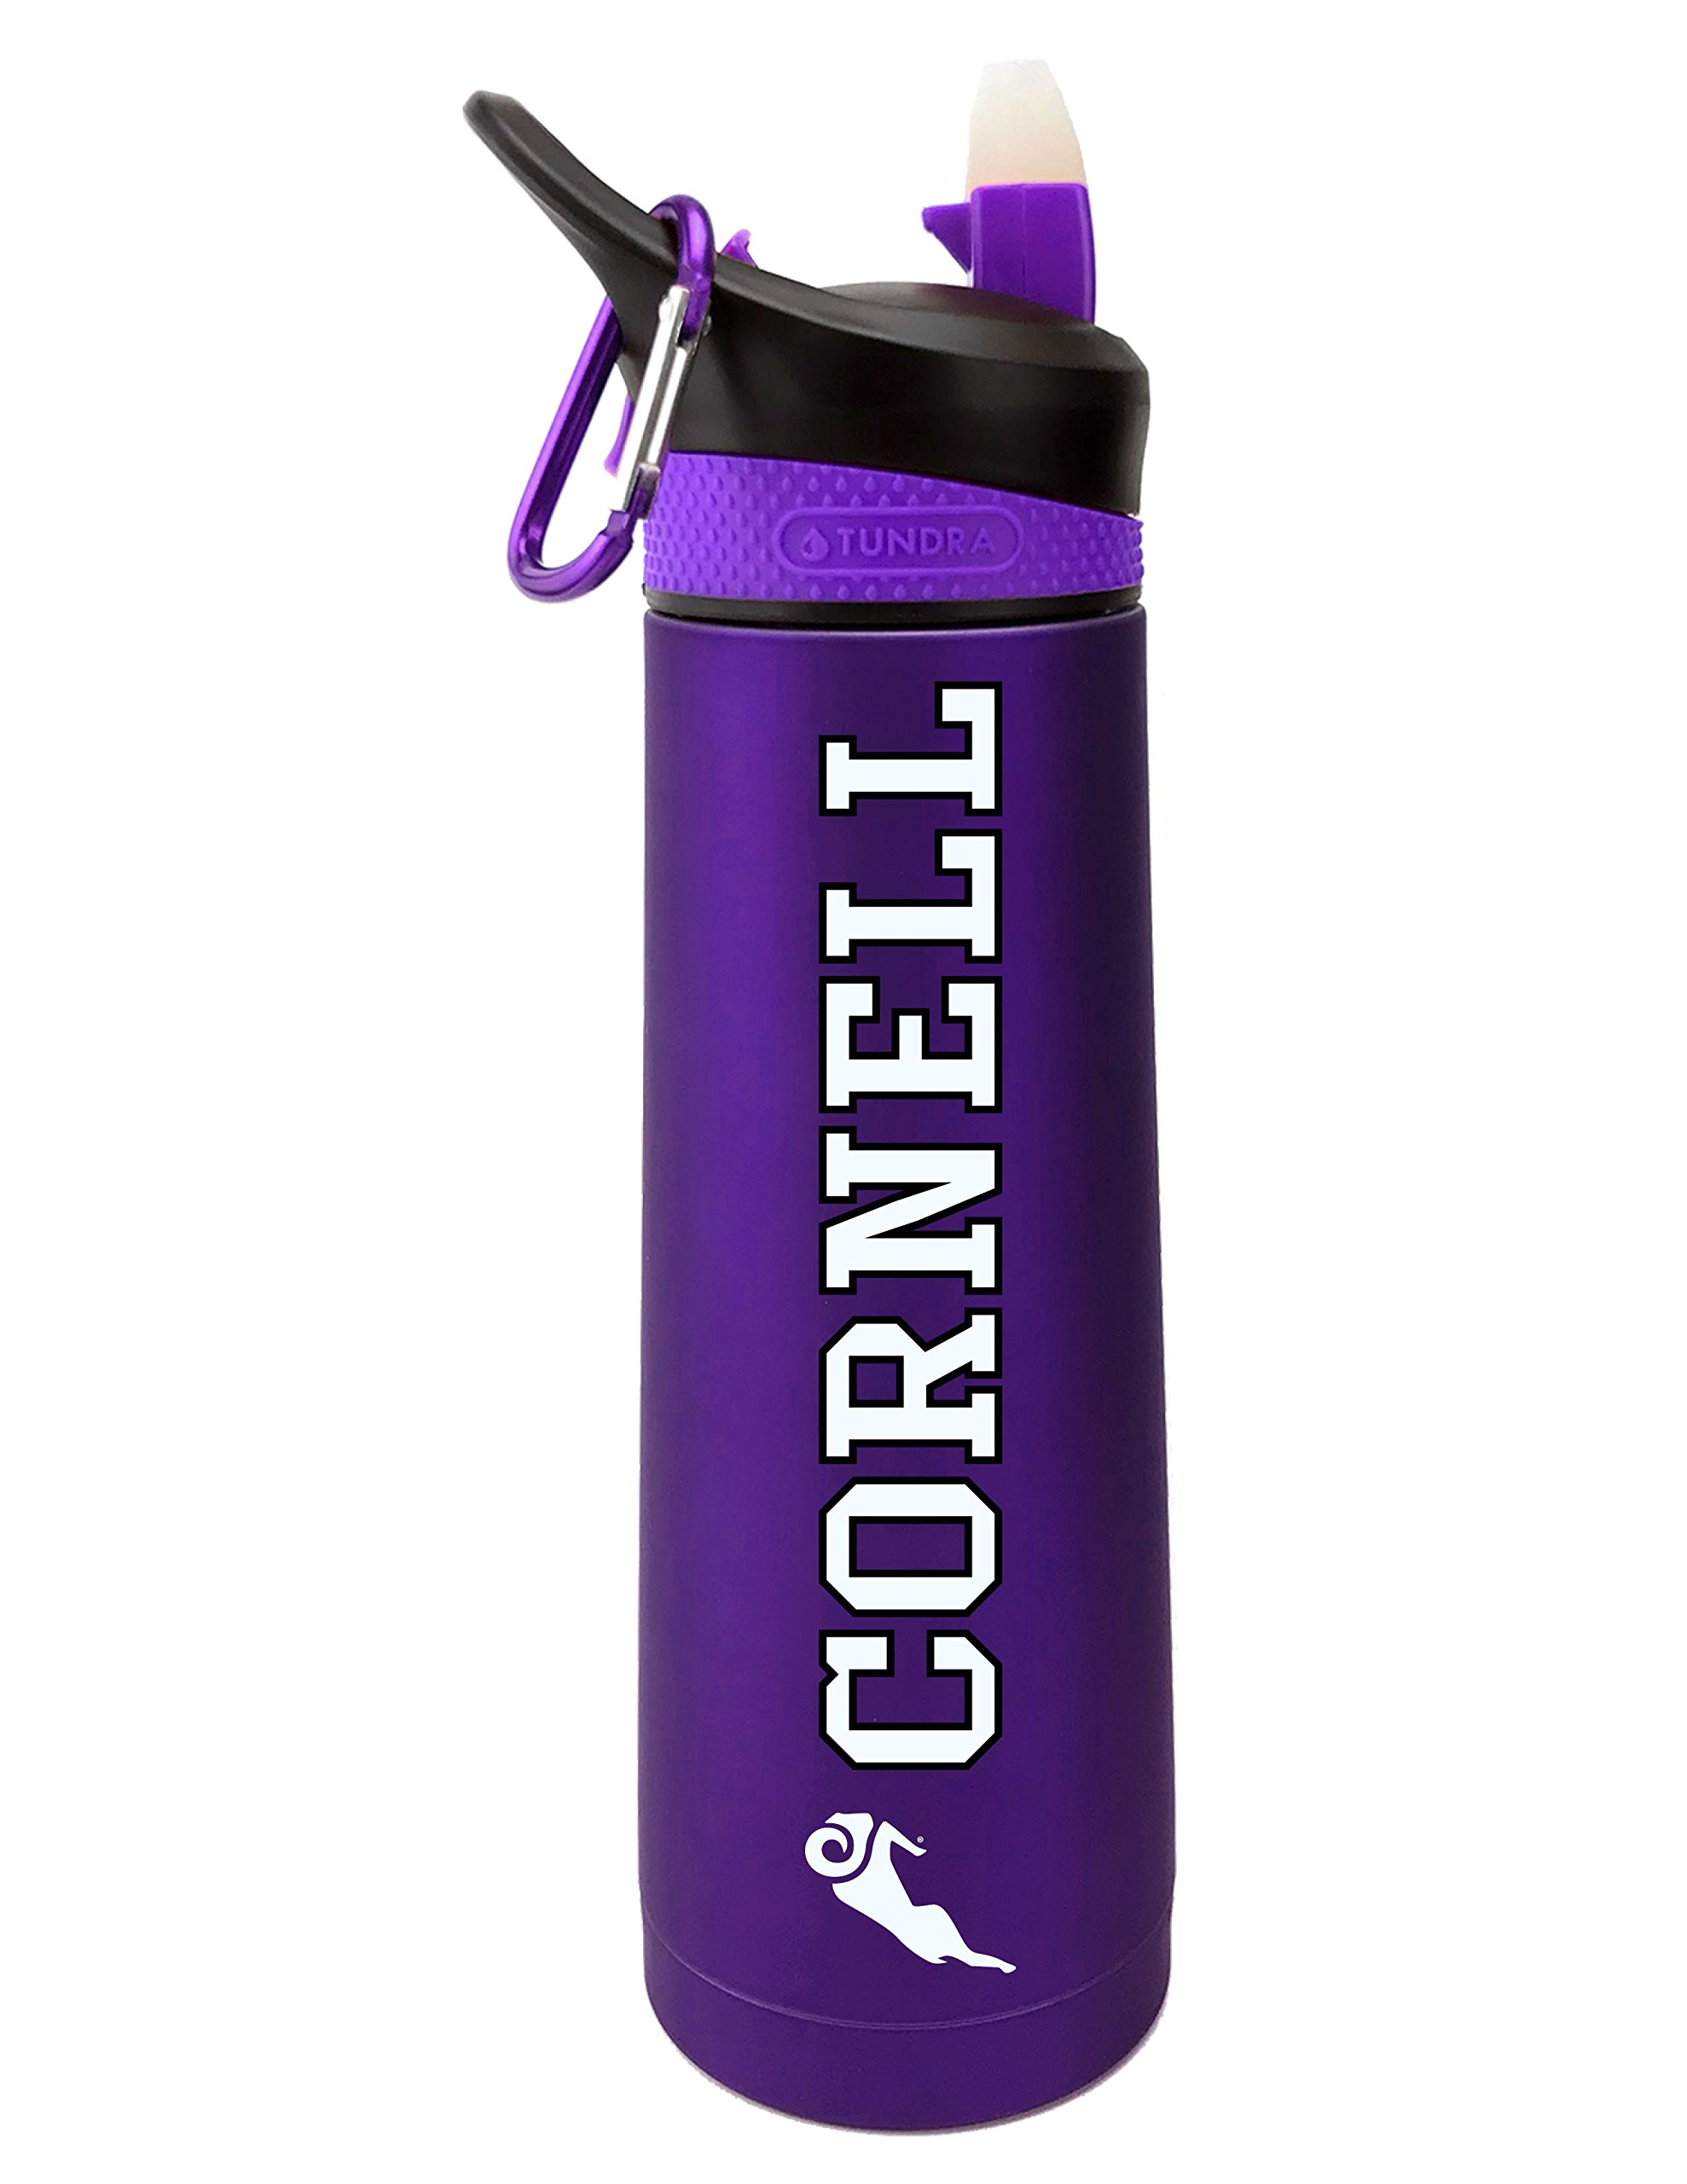 Fanatic Group Cornell College Rams Dual Walled Stainless Steel Sports Bottle, Design 2 - Purple